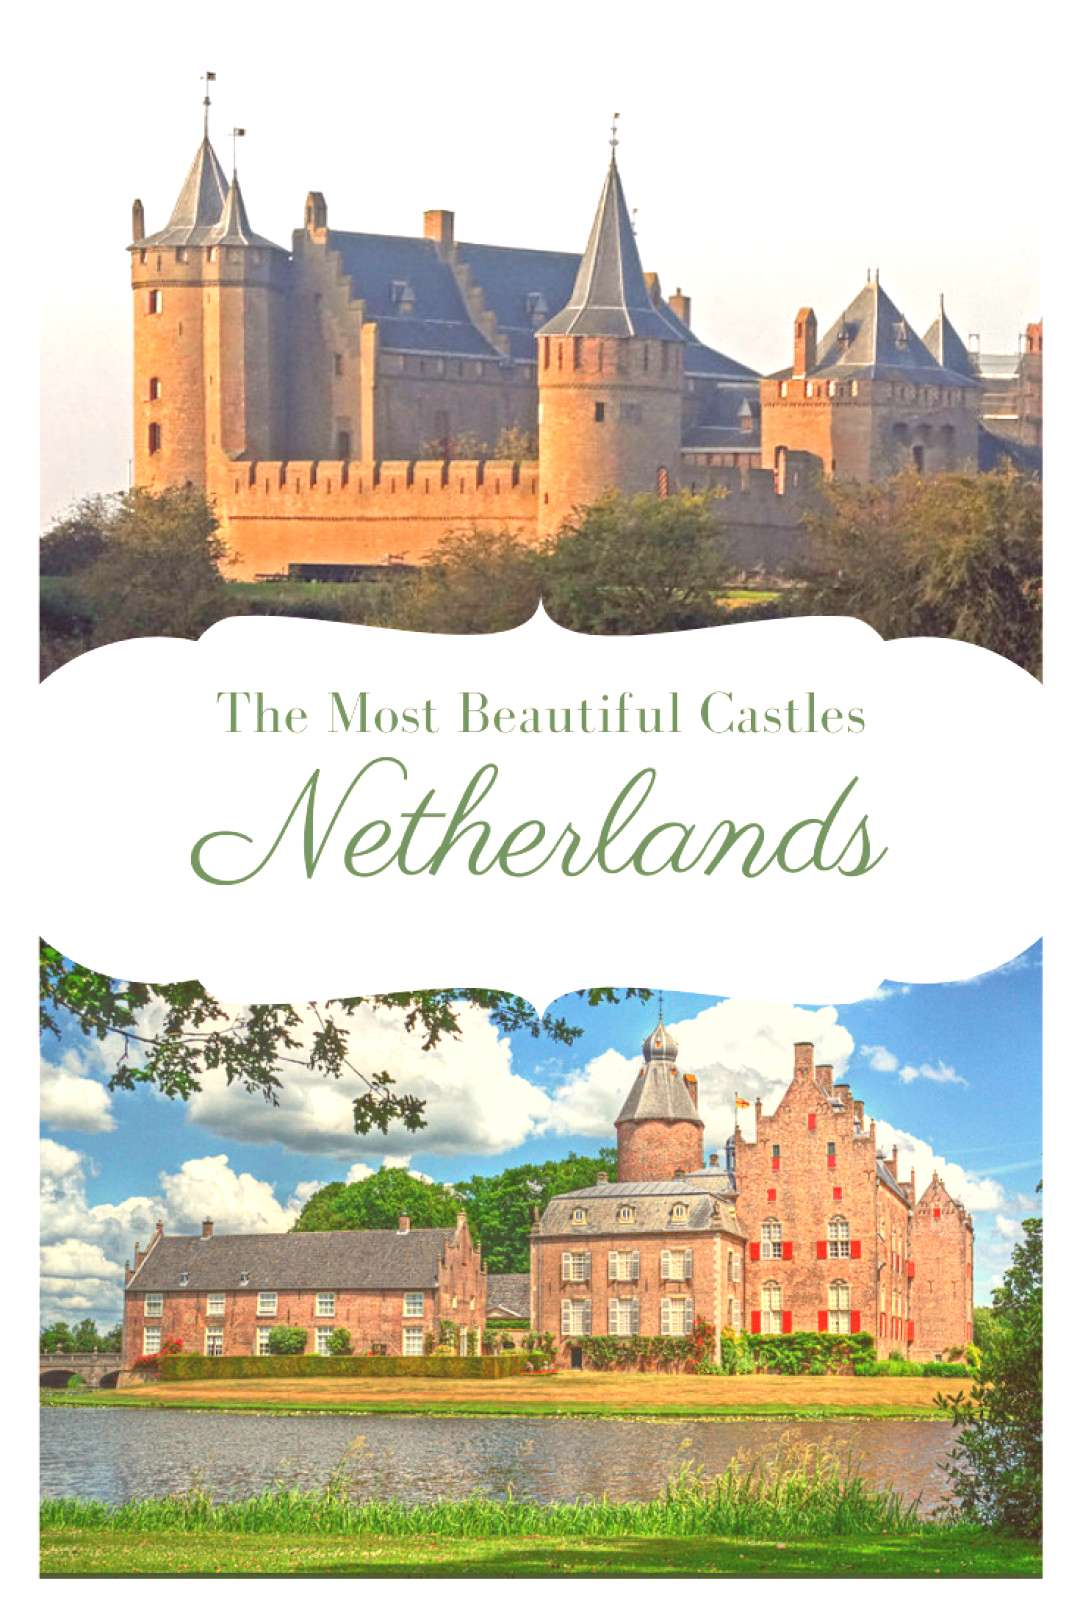 Like most European countries, the Netherlands has a long list of medieval buildings, including cast